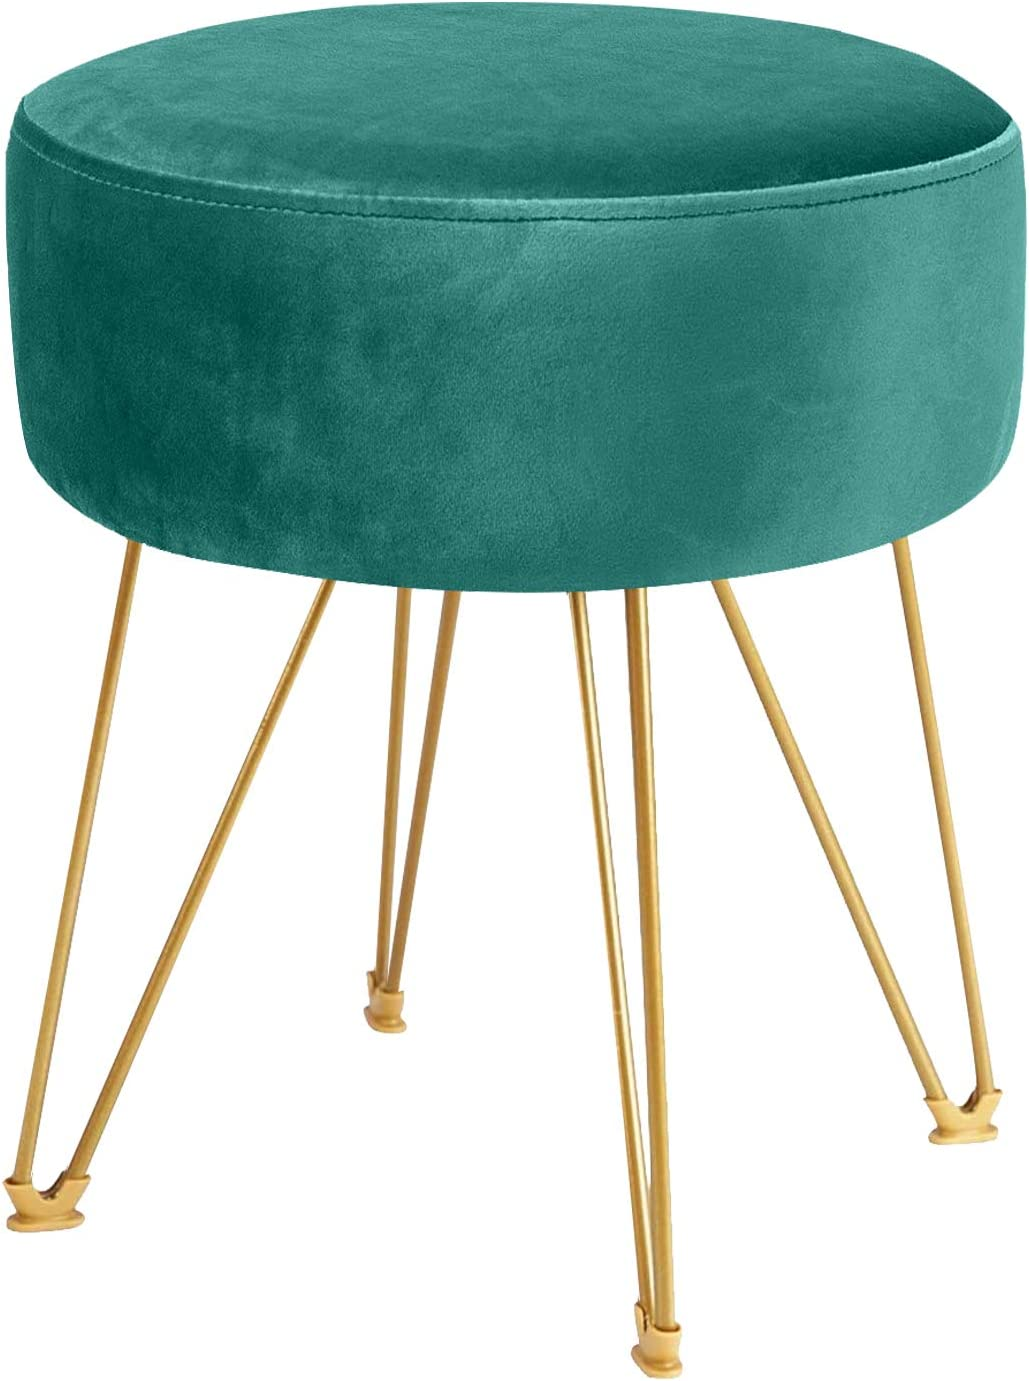 ERONE Round Footstool Ottoman Velvet Dressing Stool with Gold Metal Legs Upholstered Footrest,Makeup Chair Side Table for Kitchen Bedroom Living Room (Green)